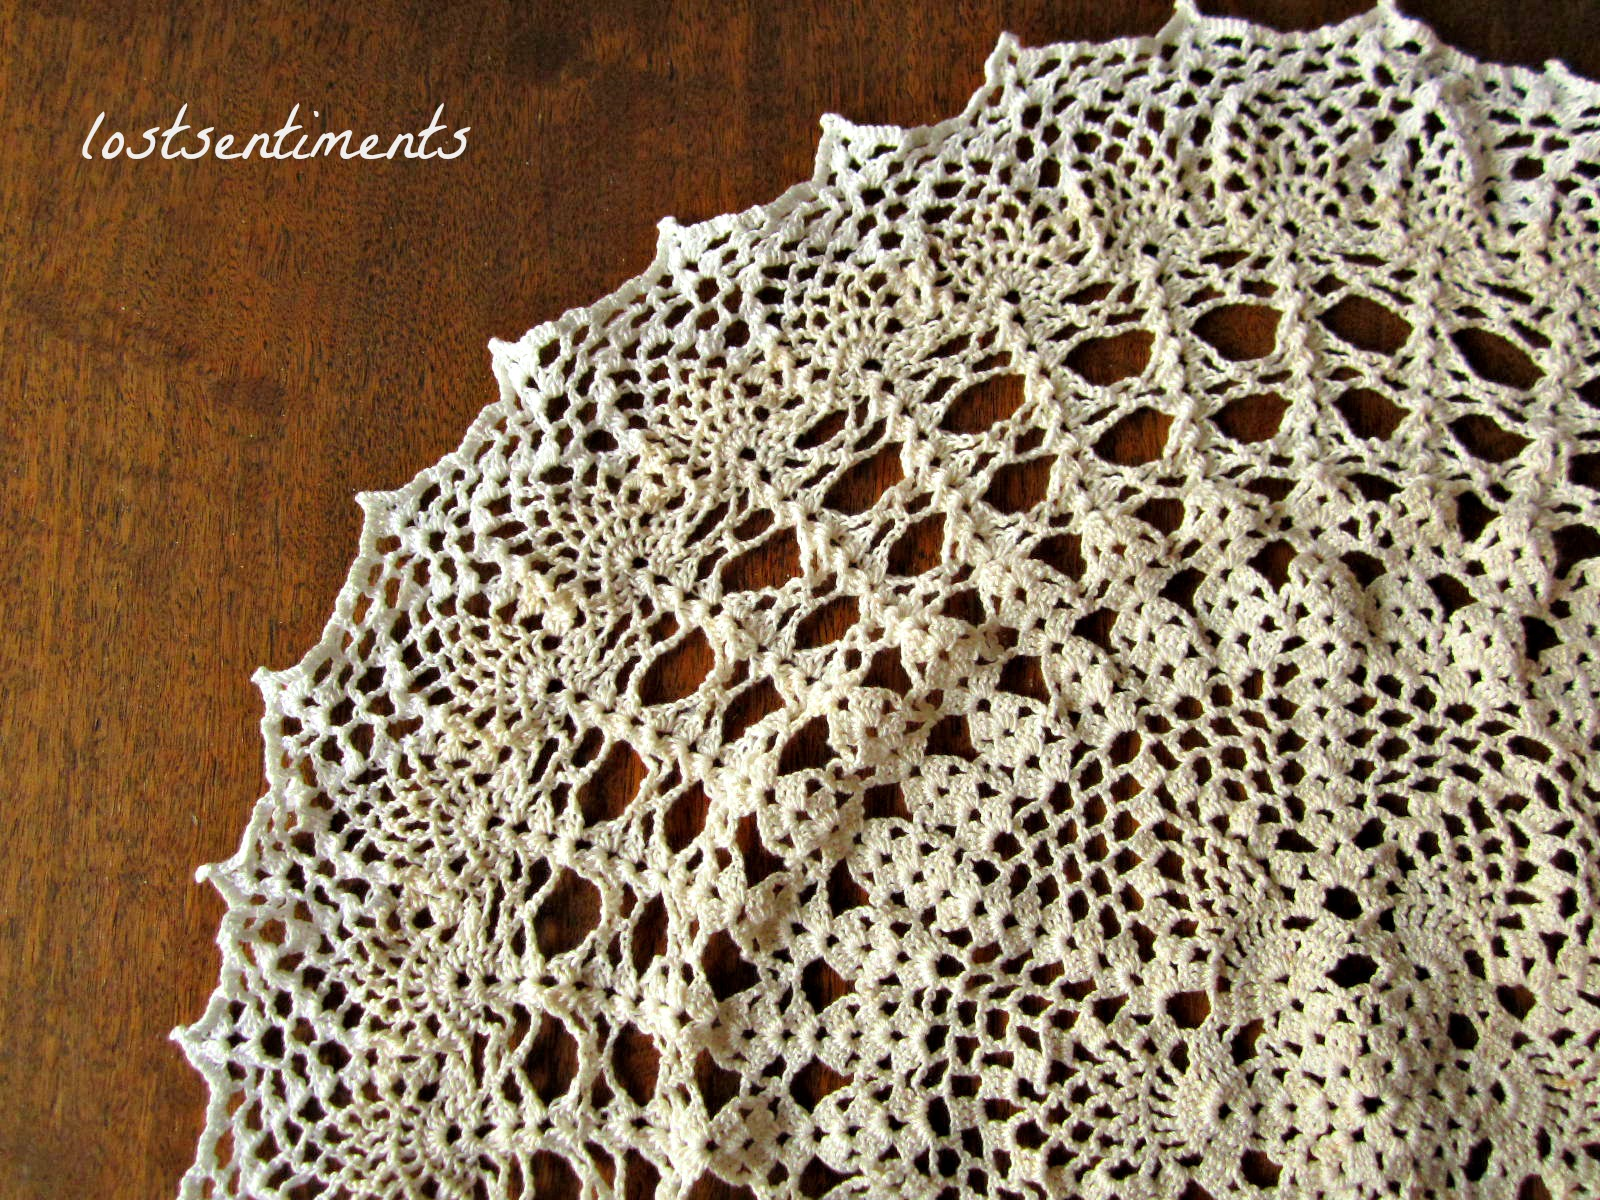 Crochet Patterns Vintage Doilies : lostsentiments: Vintage Crochet Doily Pattern - Venus